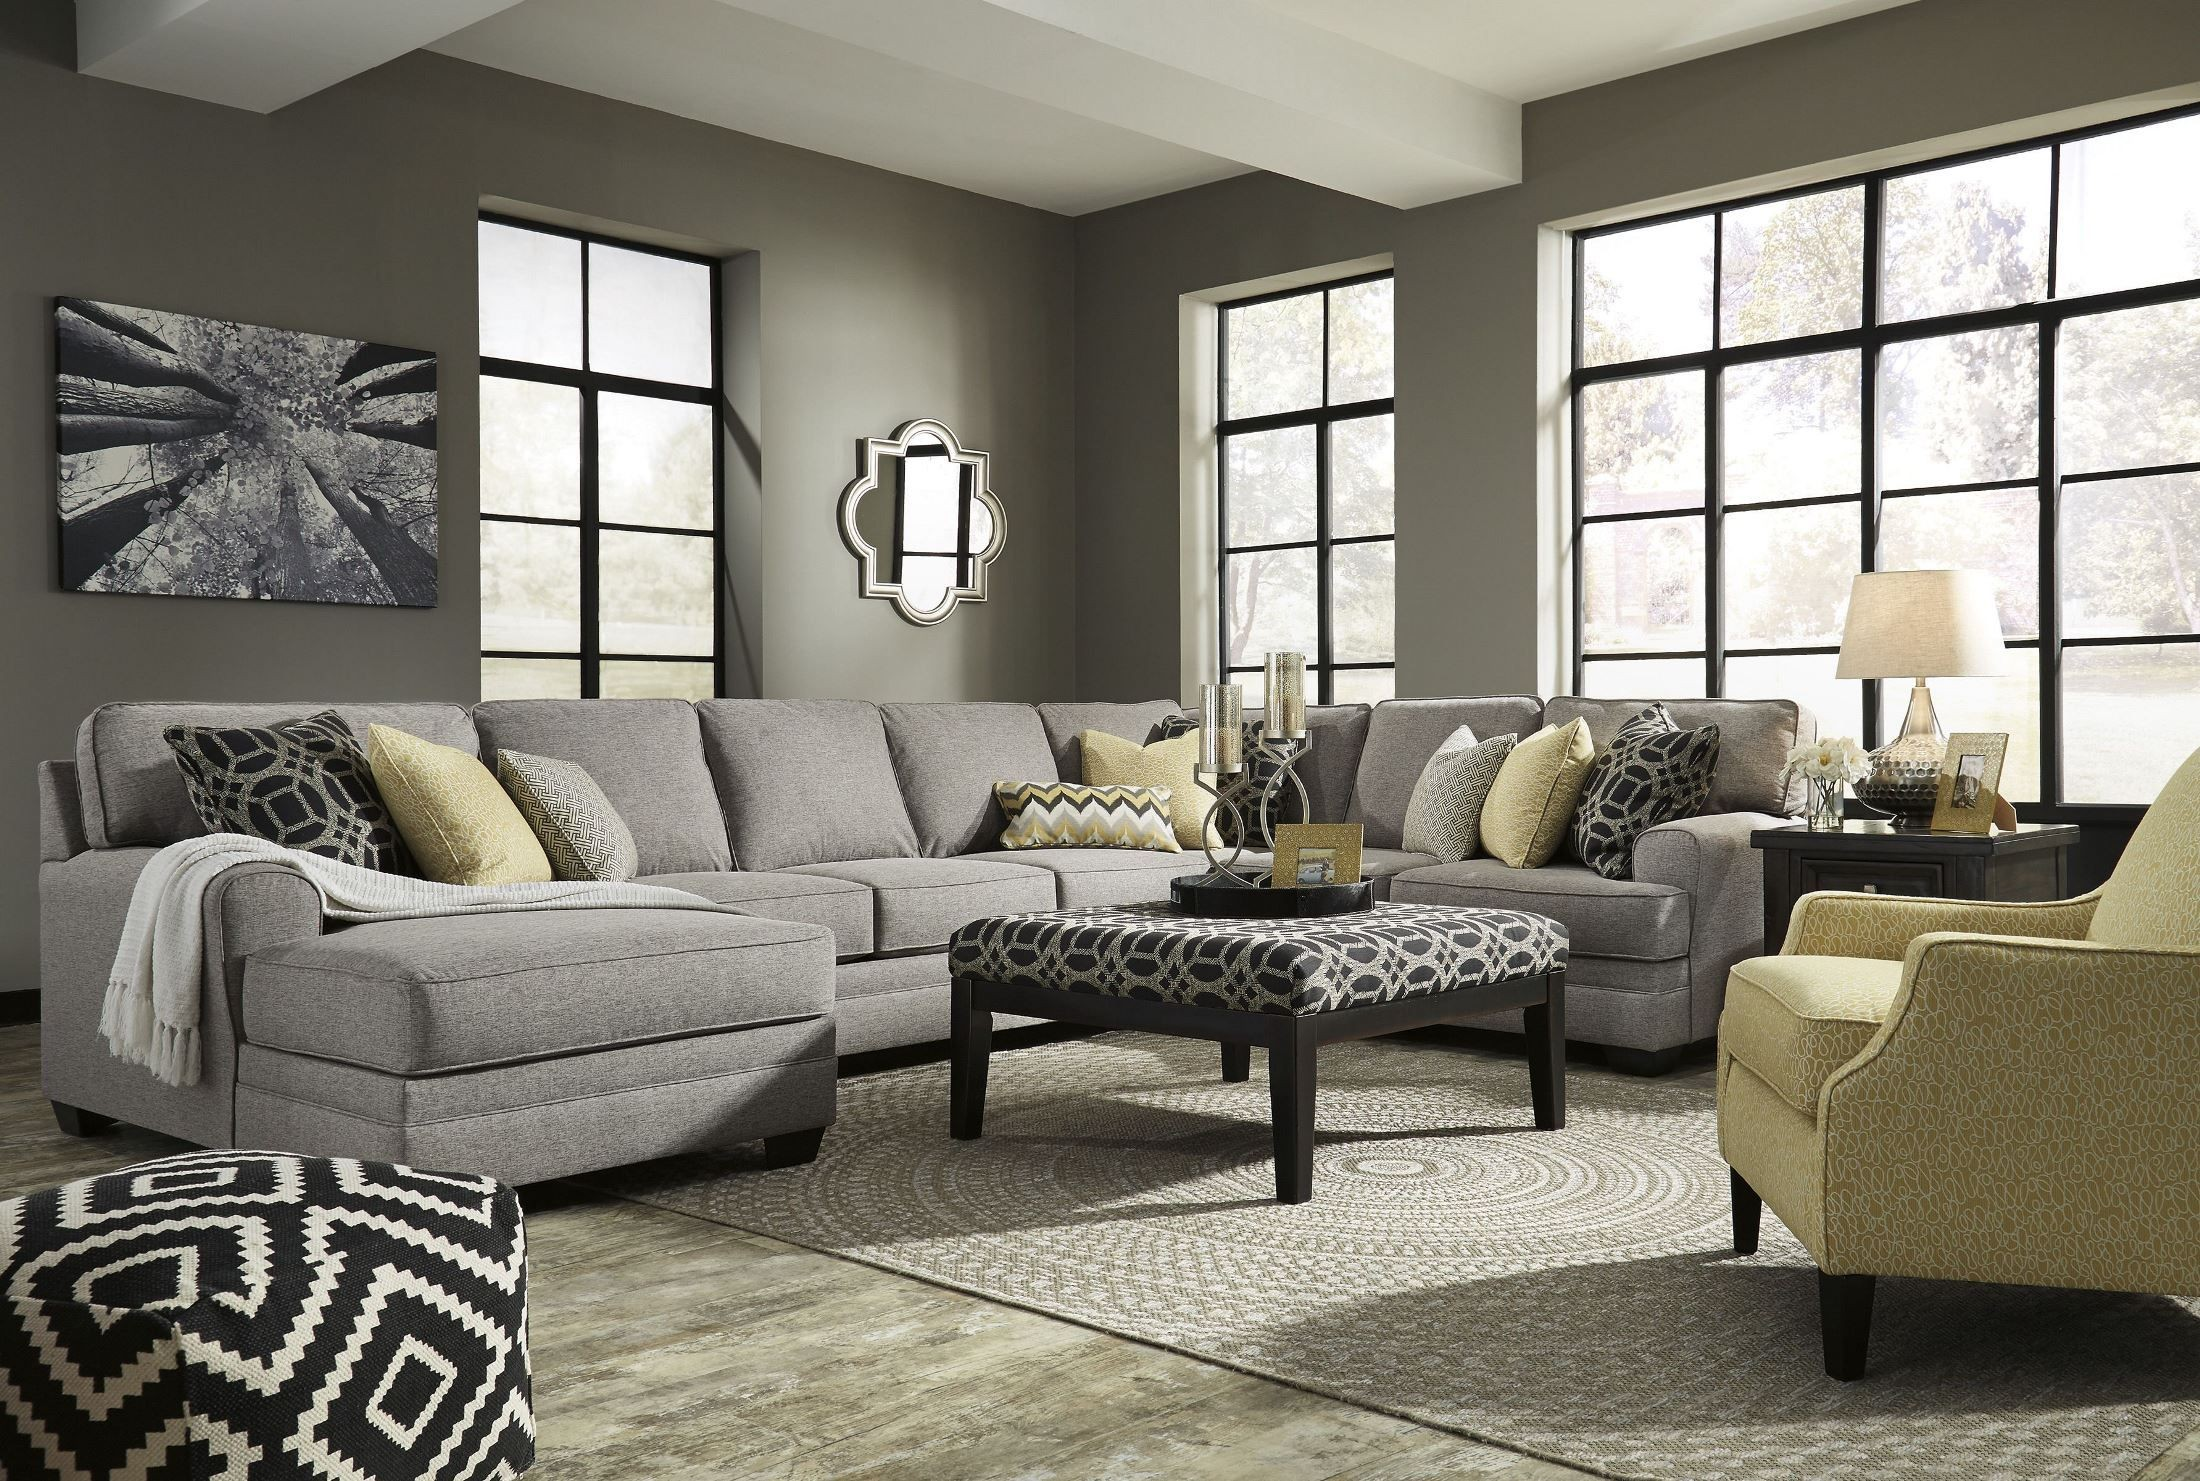 cresson pewter laf large chaise sectional from ashley coleman furniture. Black Bedroom Furniture Sets. Home Design Ideas